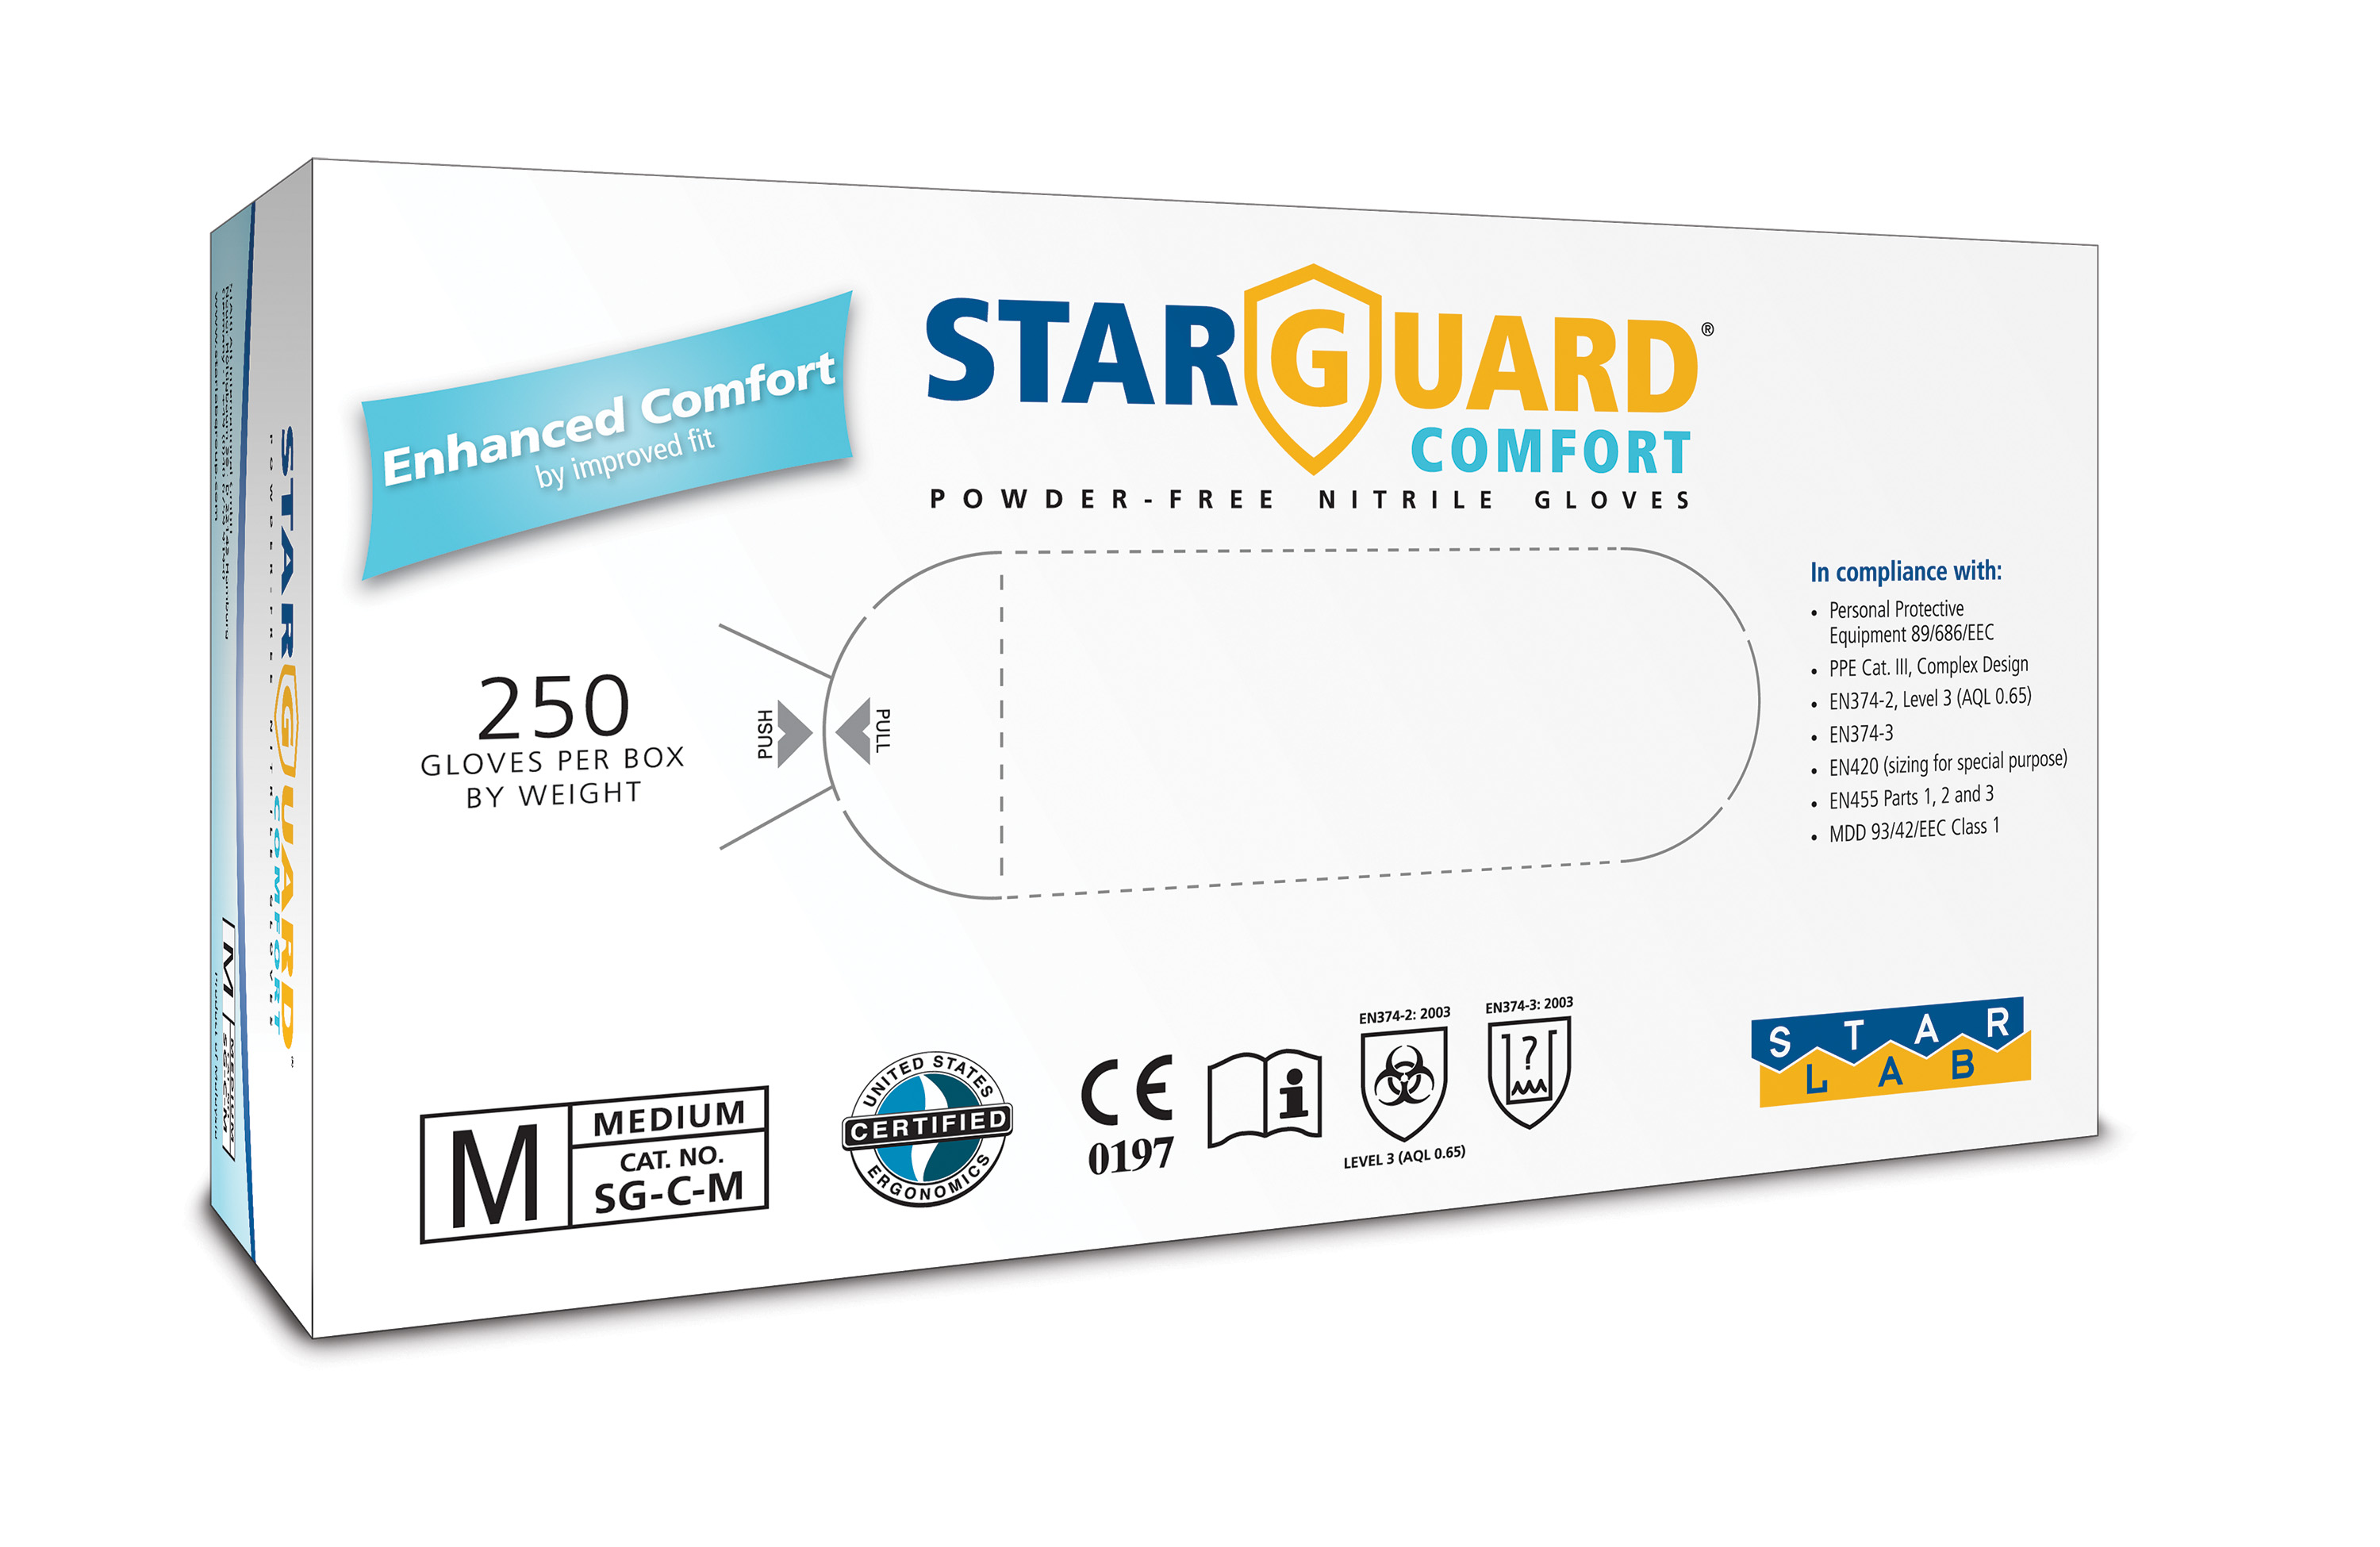 StarGuard COMFORT  (feels like Latex) Nitrile Gloves, Powder Free, Blue, Size S, Pk/ 10 x 250 gloves  - just sFr. 5,25/100 gloves